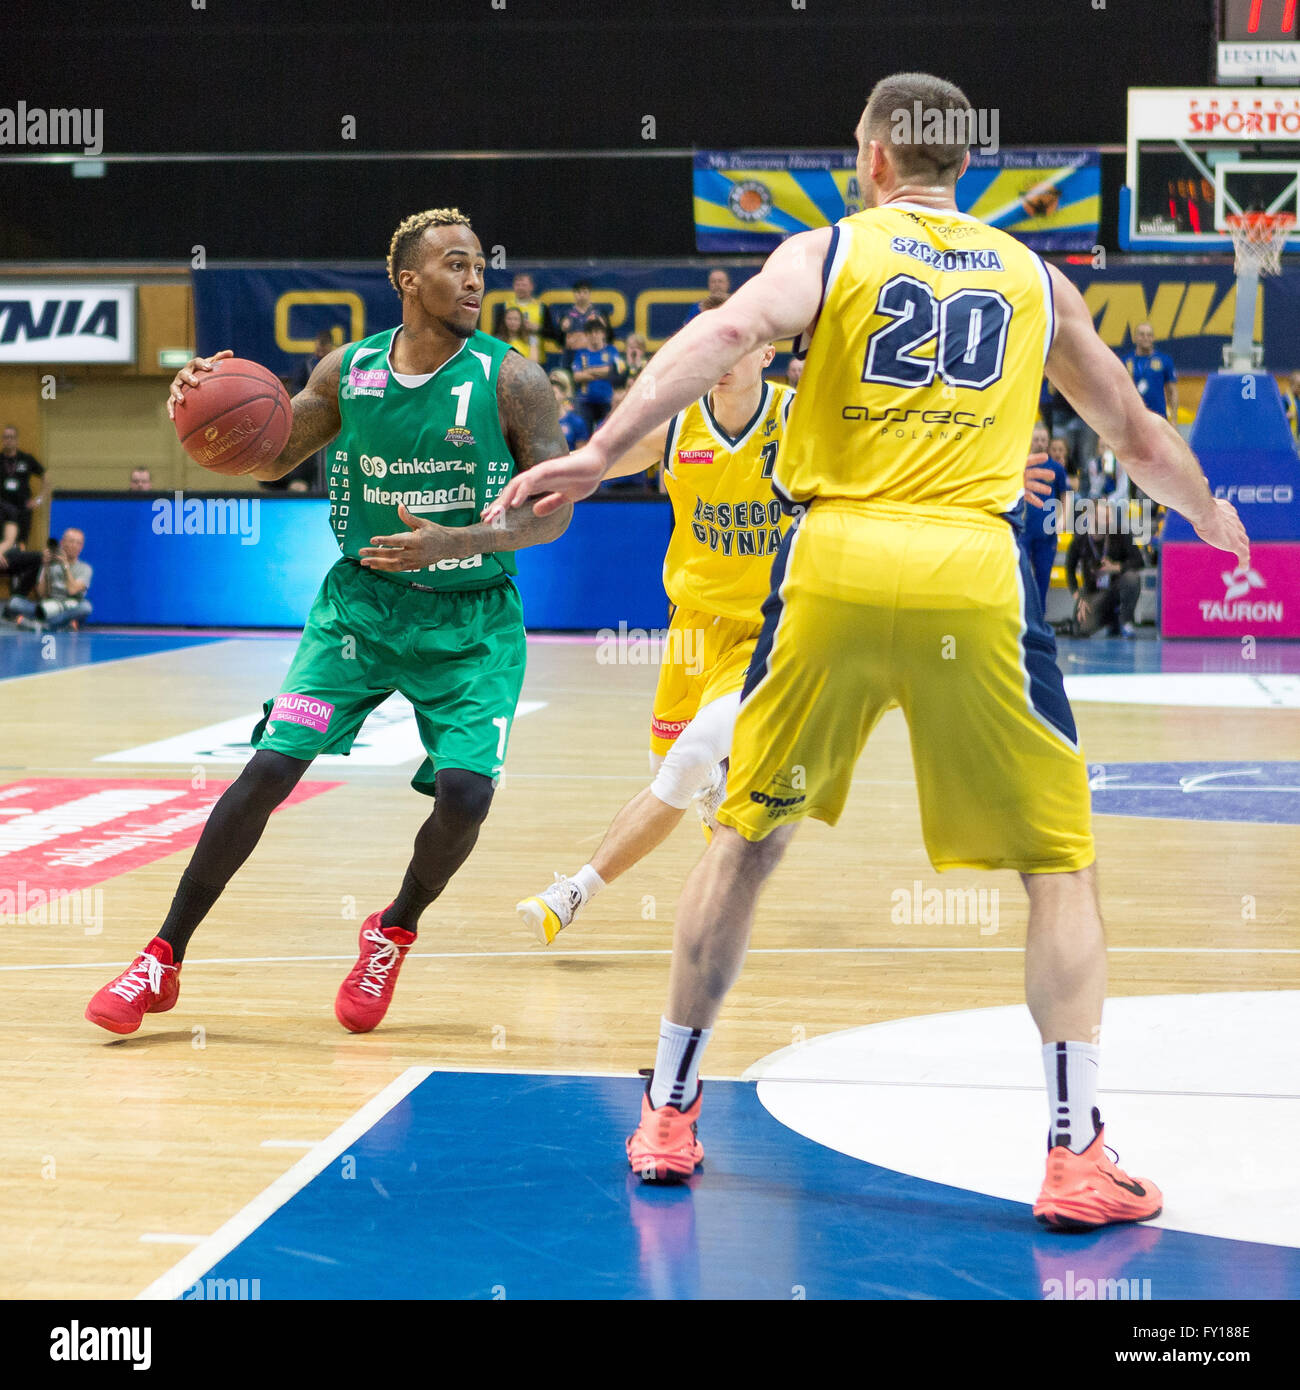 Gdynia Arena, Gdynia, Poland, 19th April, 2016. Basketball Tauron League,  Dee Bost, Piotr Szczotka in action during - Stock Image